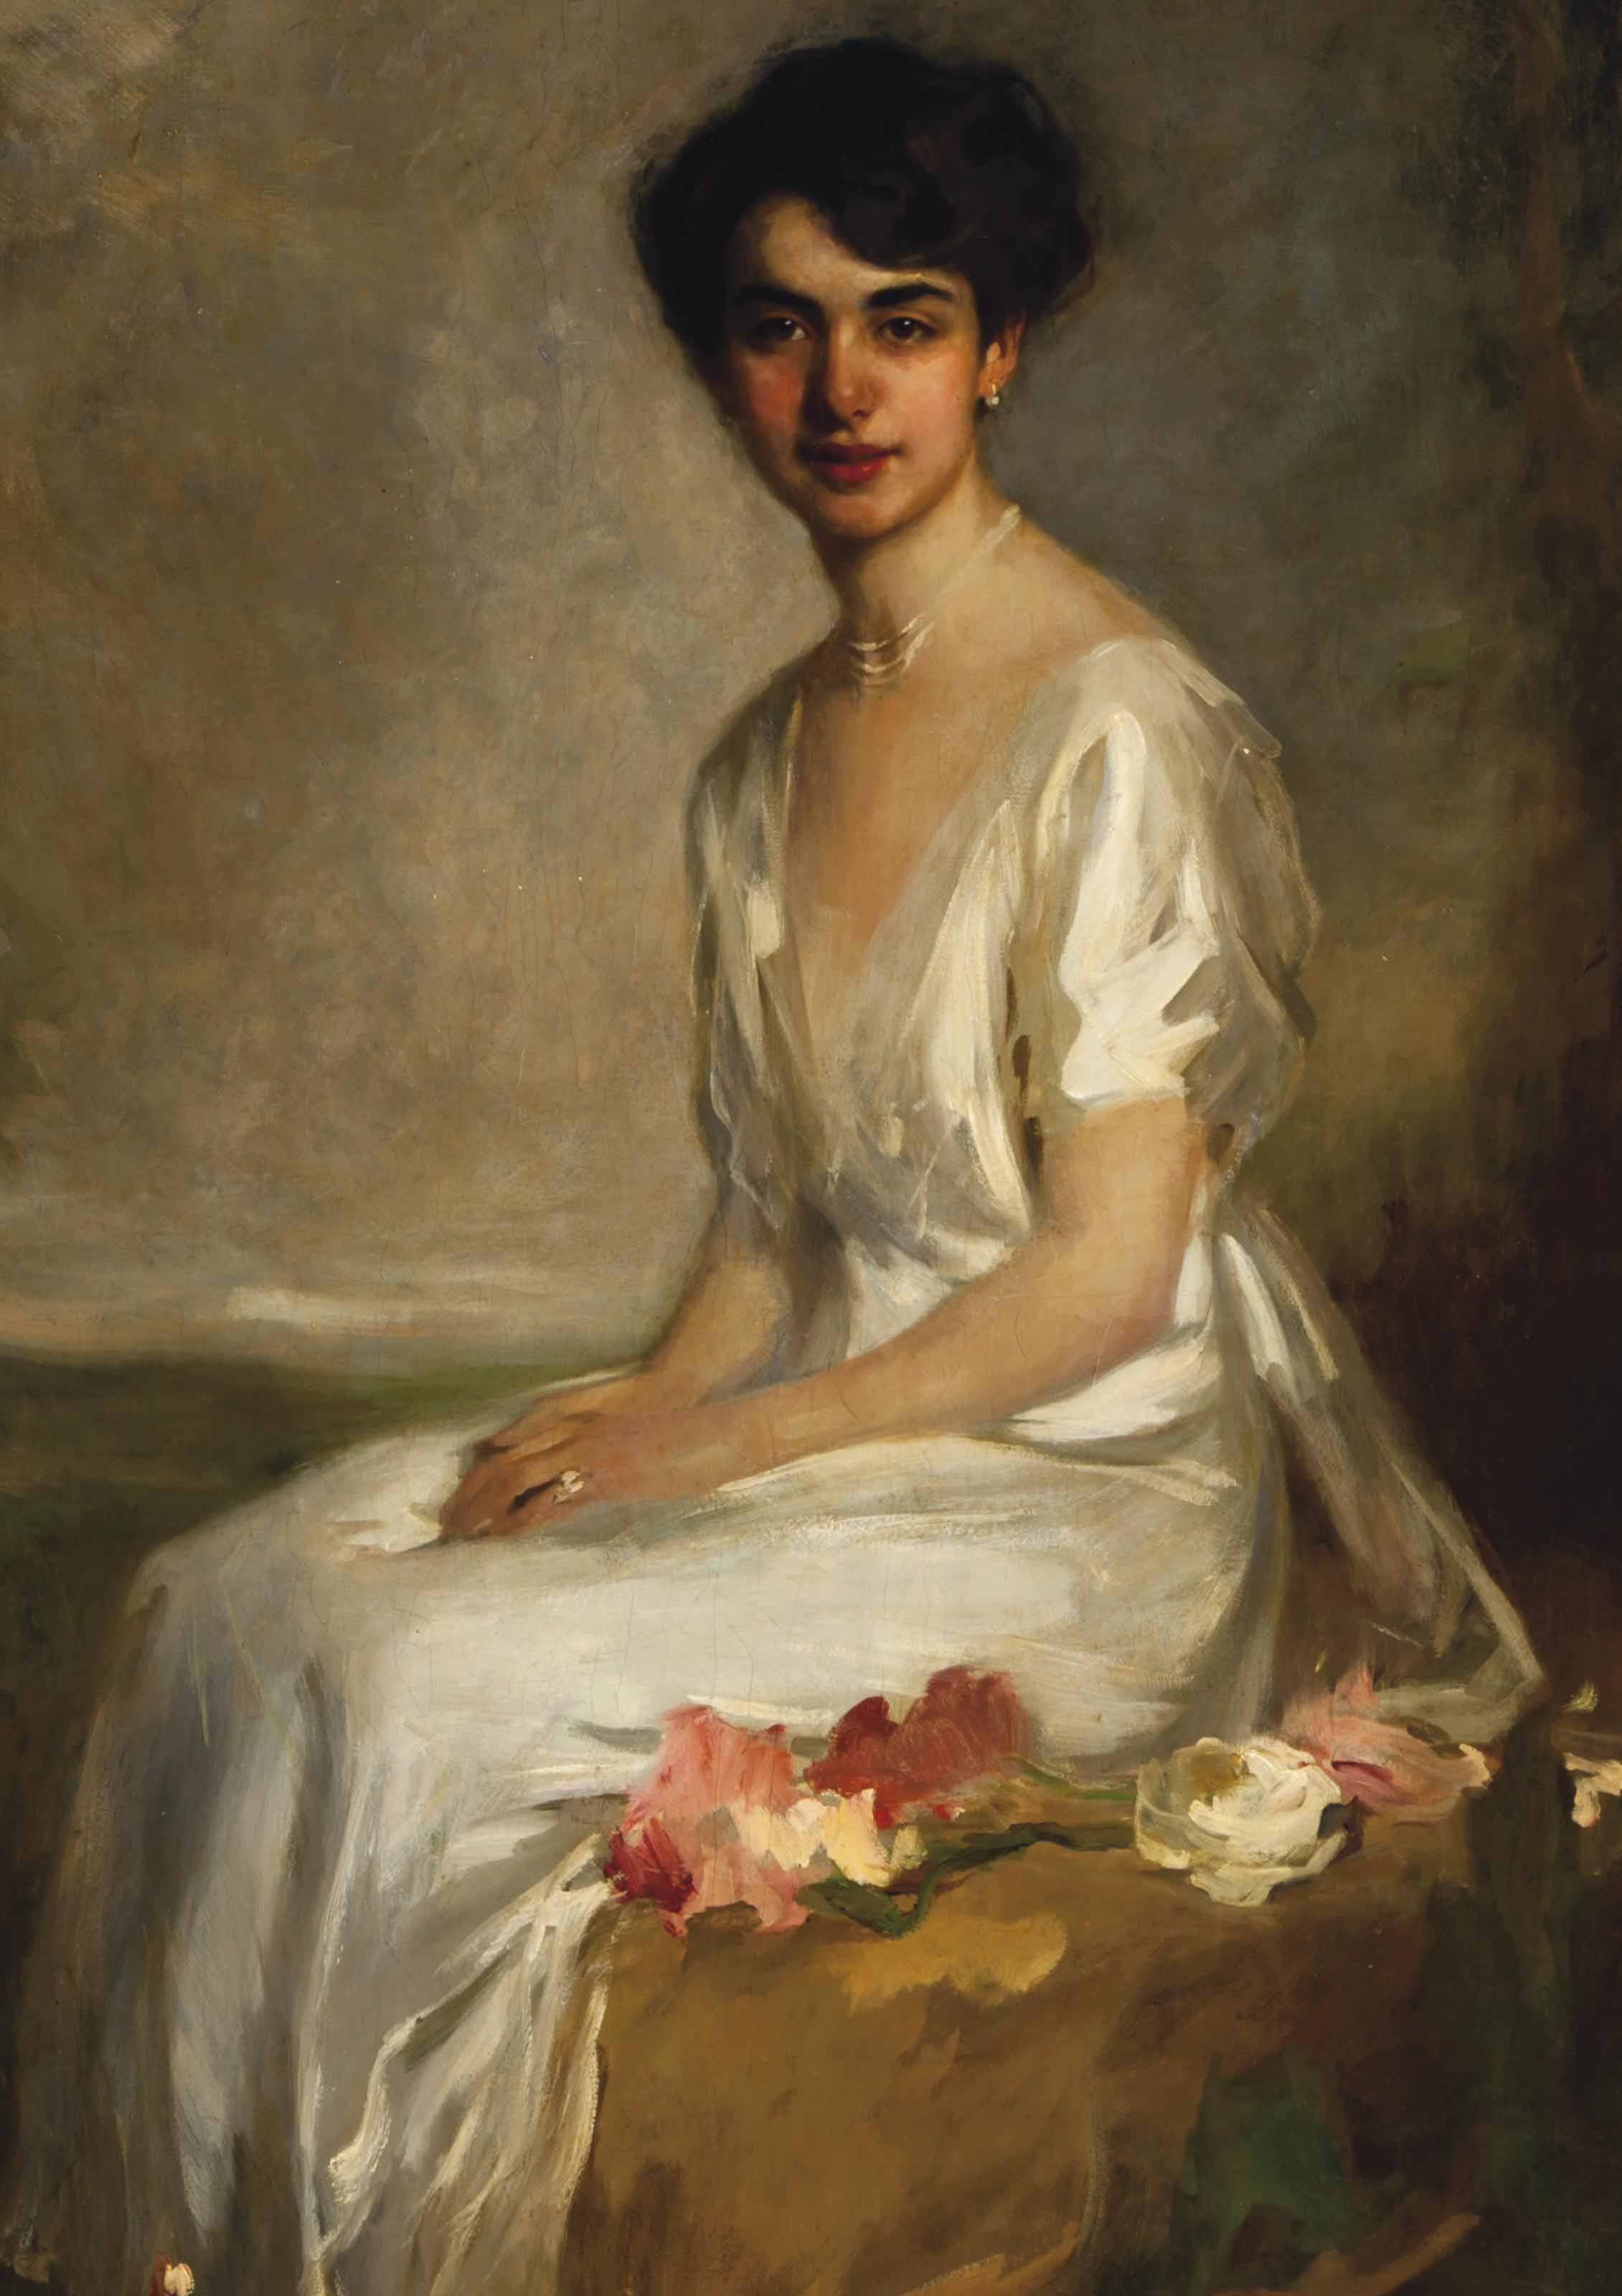 Portrait of an Elegant Young Woman Dressed in White